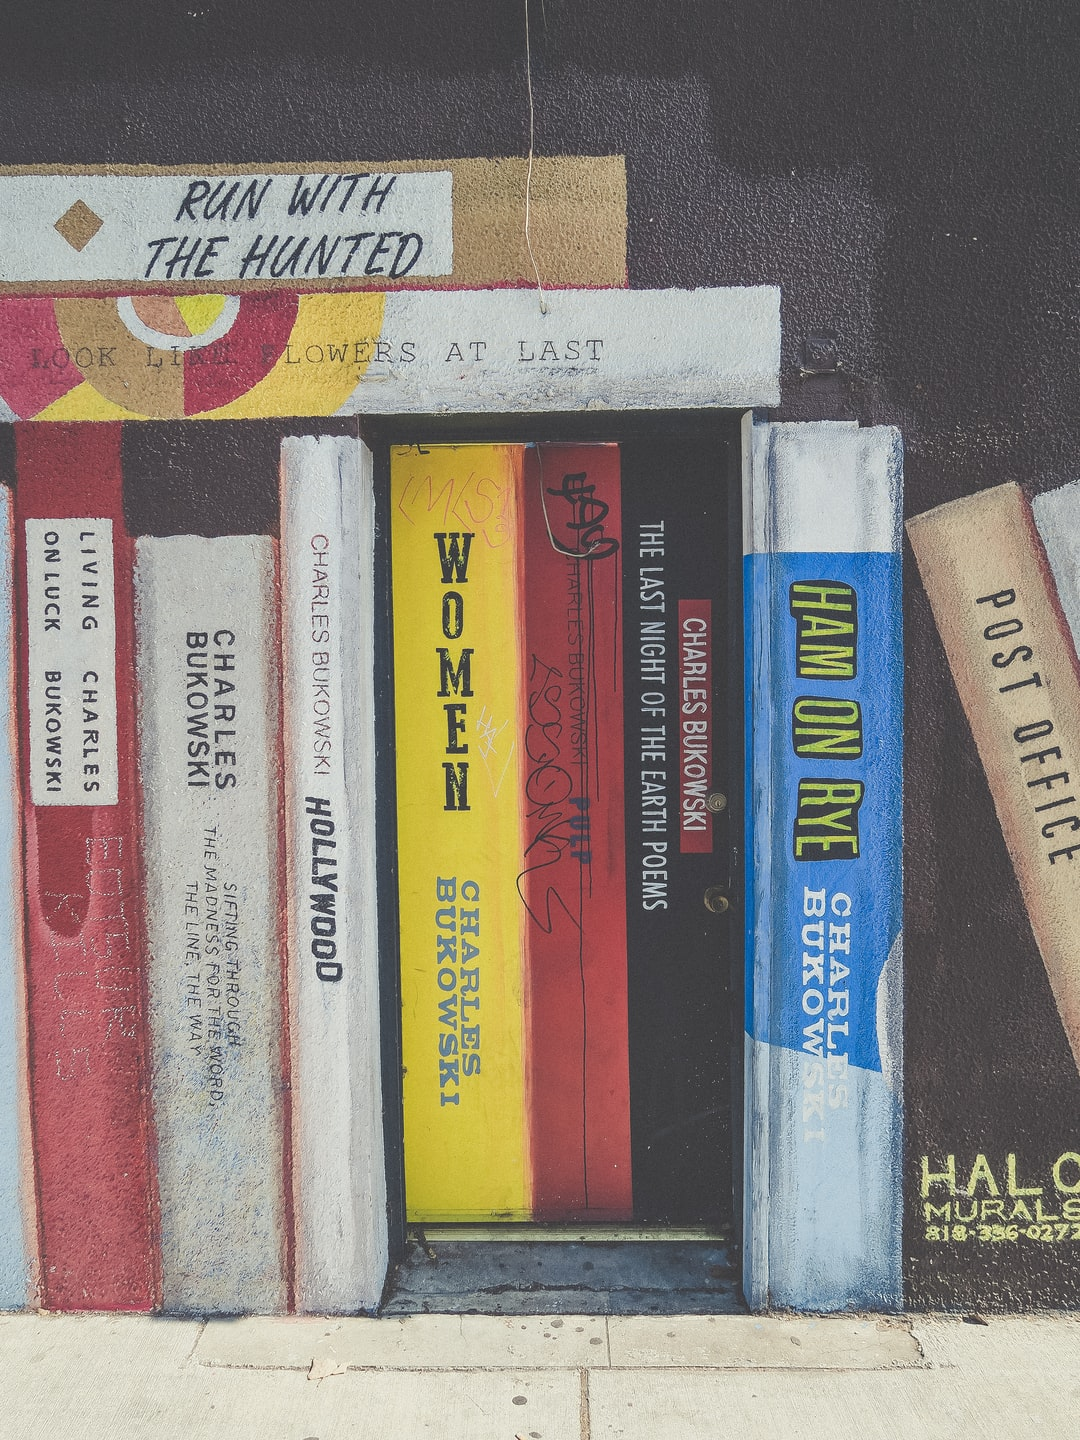 There is a store in Hollywood that has always fascinated me. I have had a lot of wonderful shopping experiences there and they have talked about building a bar in the back related to Charles Bukowski. They put up this mural and for years, it has been so simple, yet so smart to me. I love books and a mural of a bookshelf of your favorite author is such a great idea. I don't own a kindle and have never read a book on my computer. These books might be a great reminder to go to your local library.